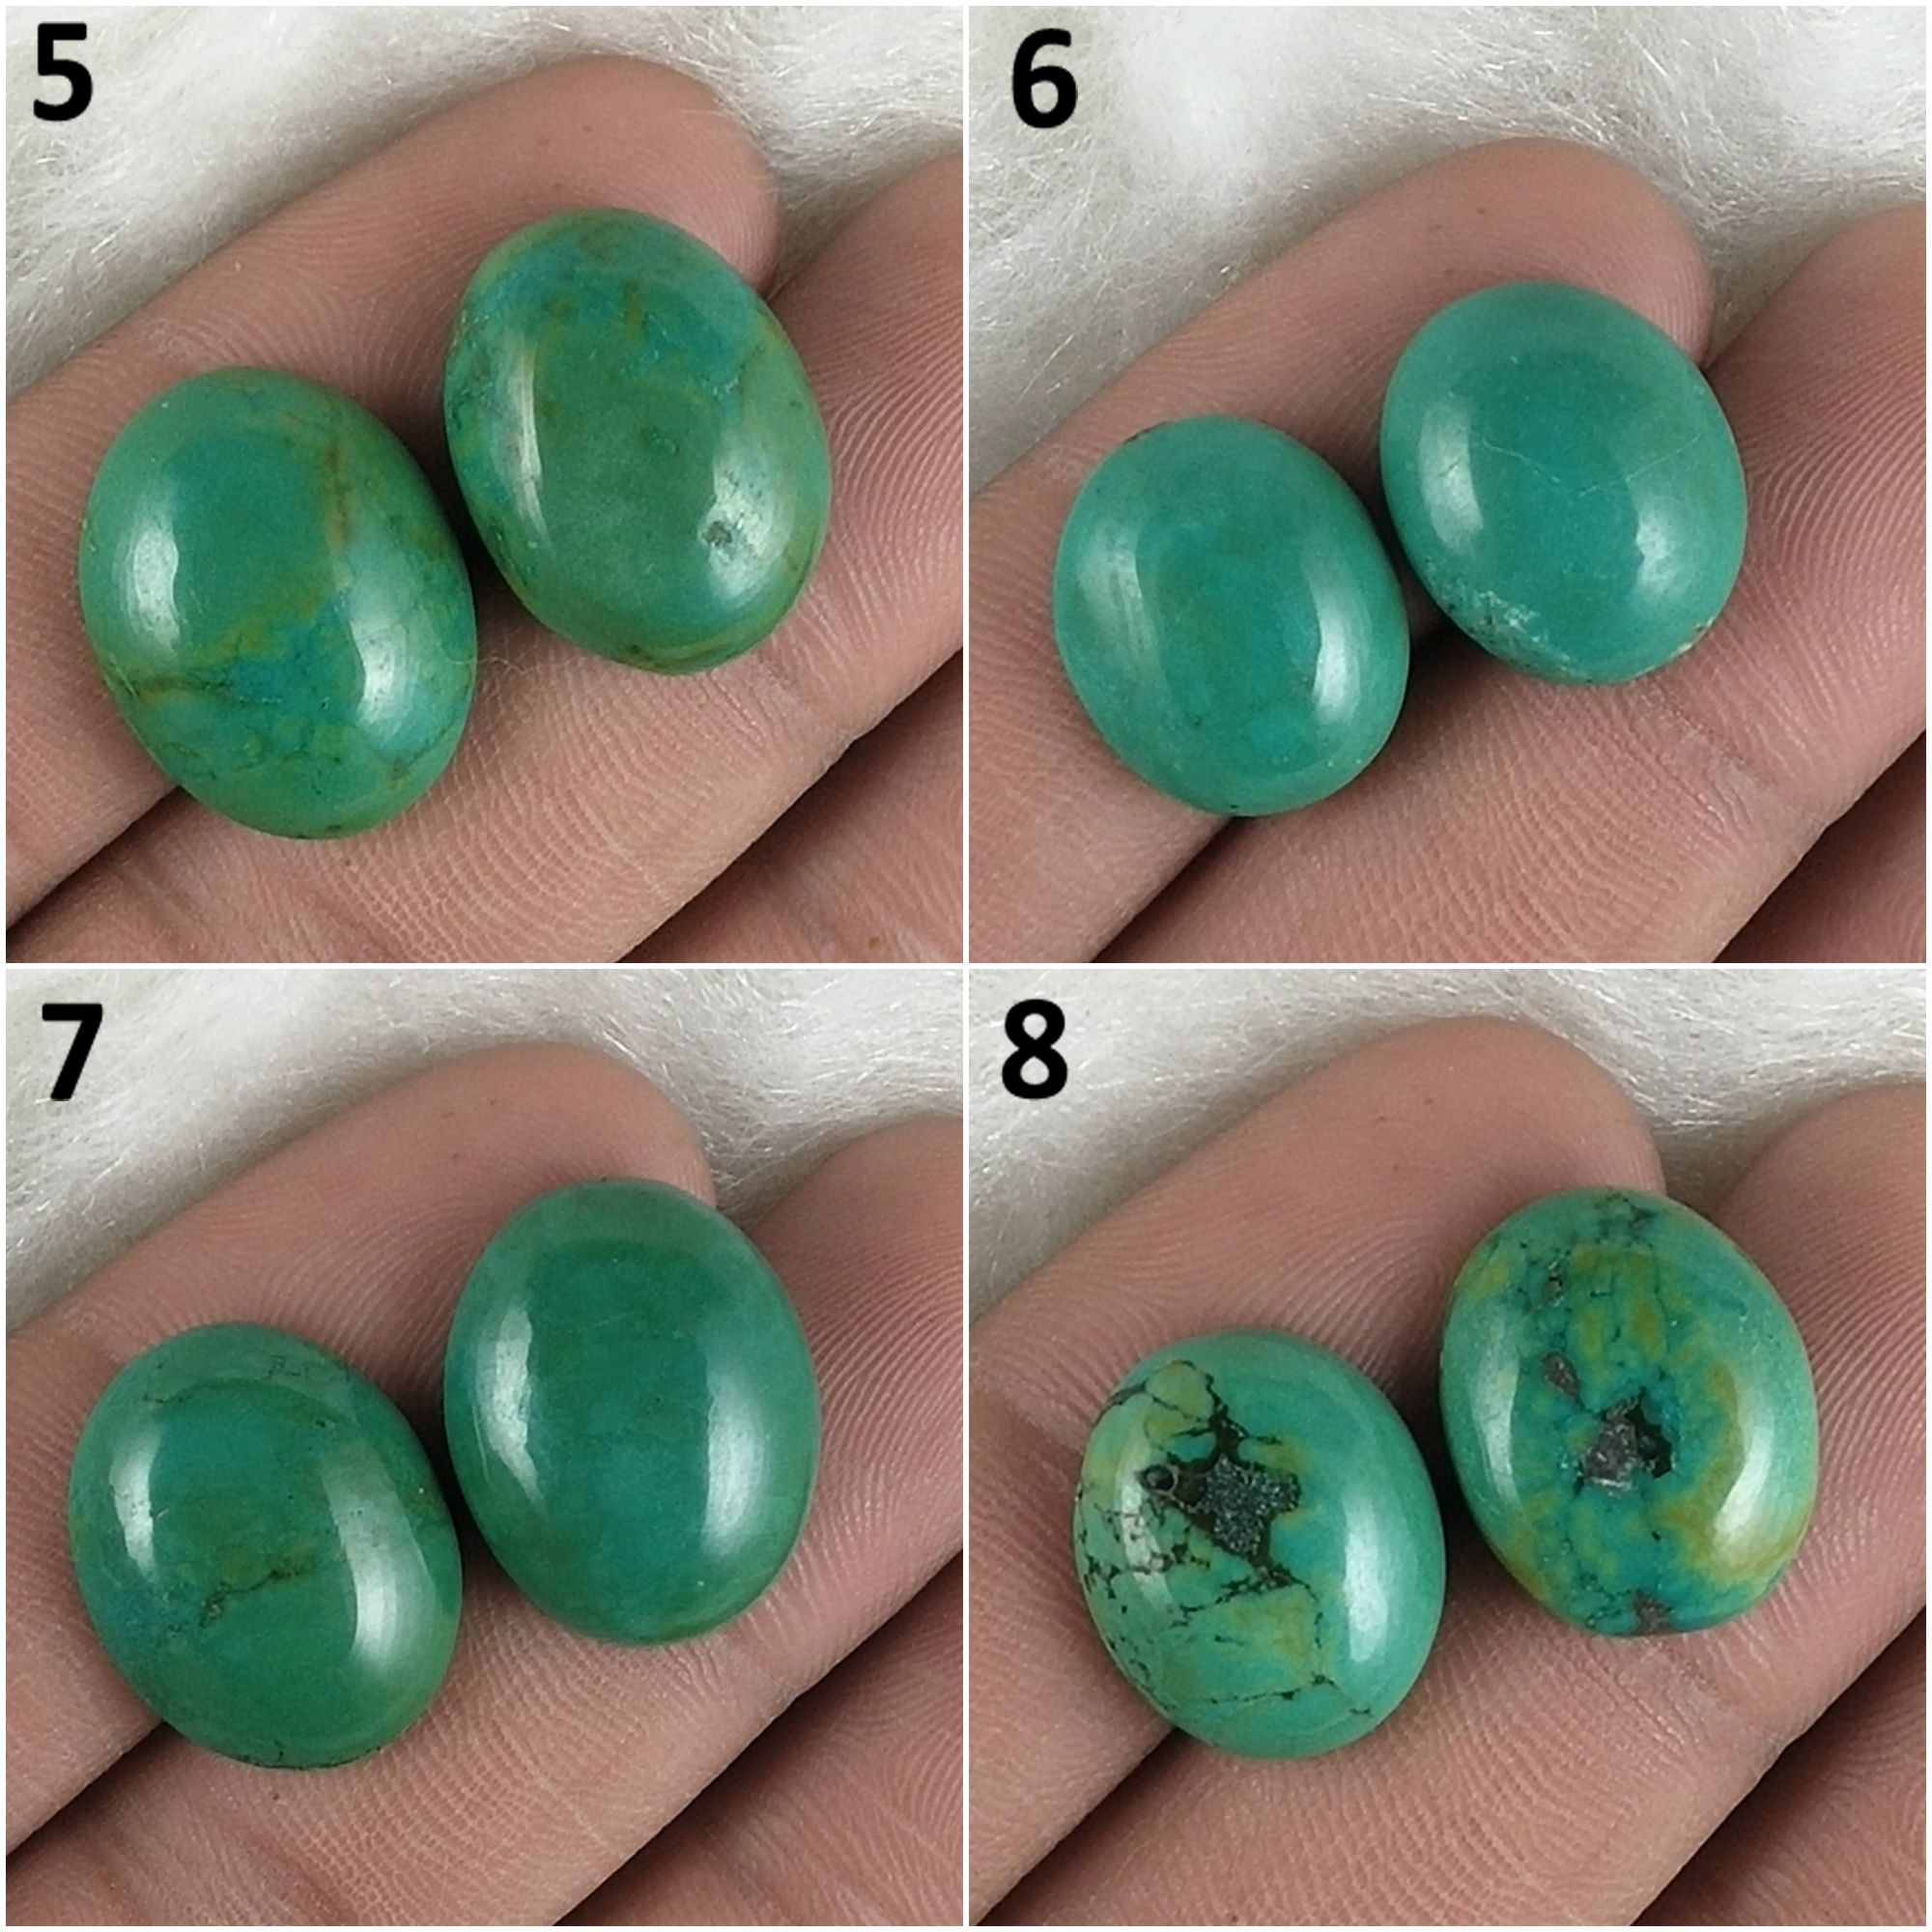 Tibet Turquoise Cabochon Gemstone Matched Pair